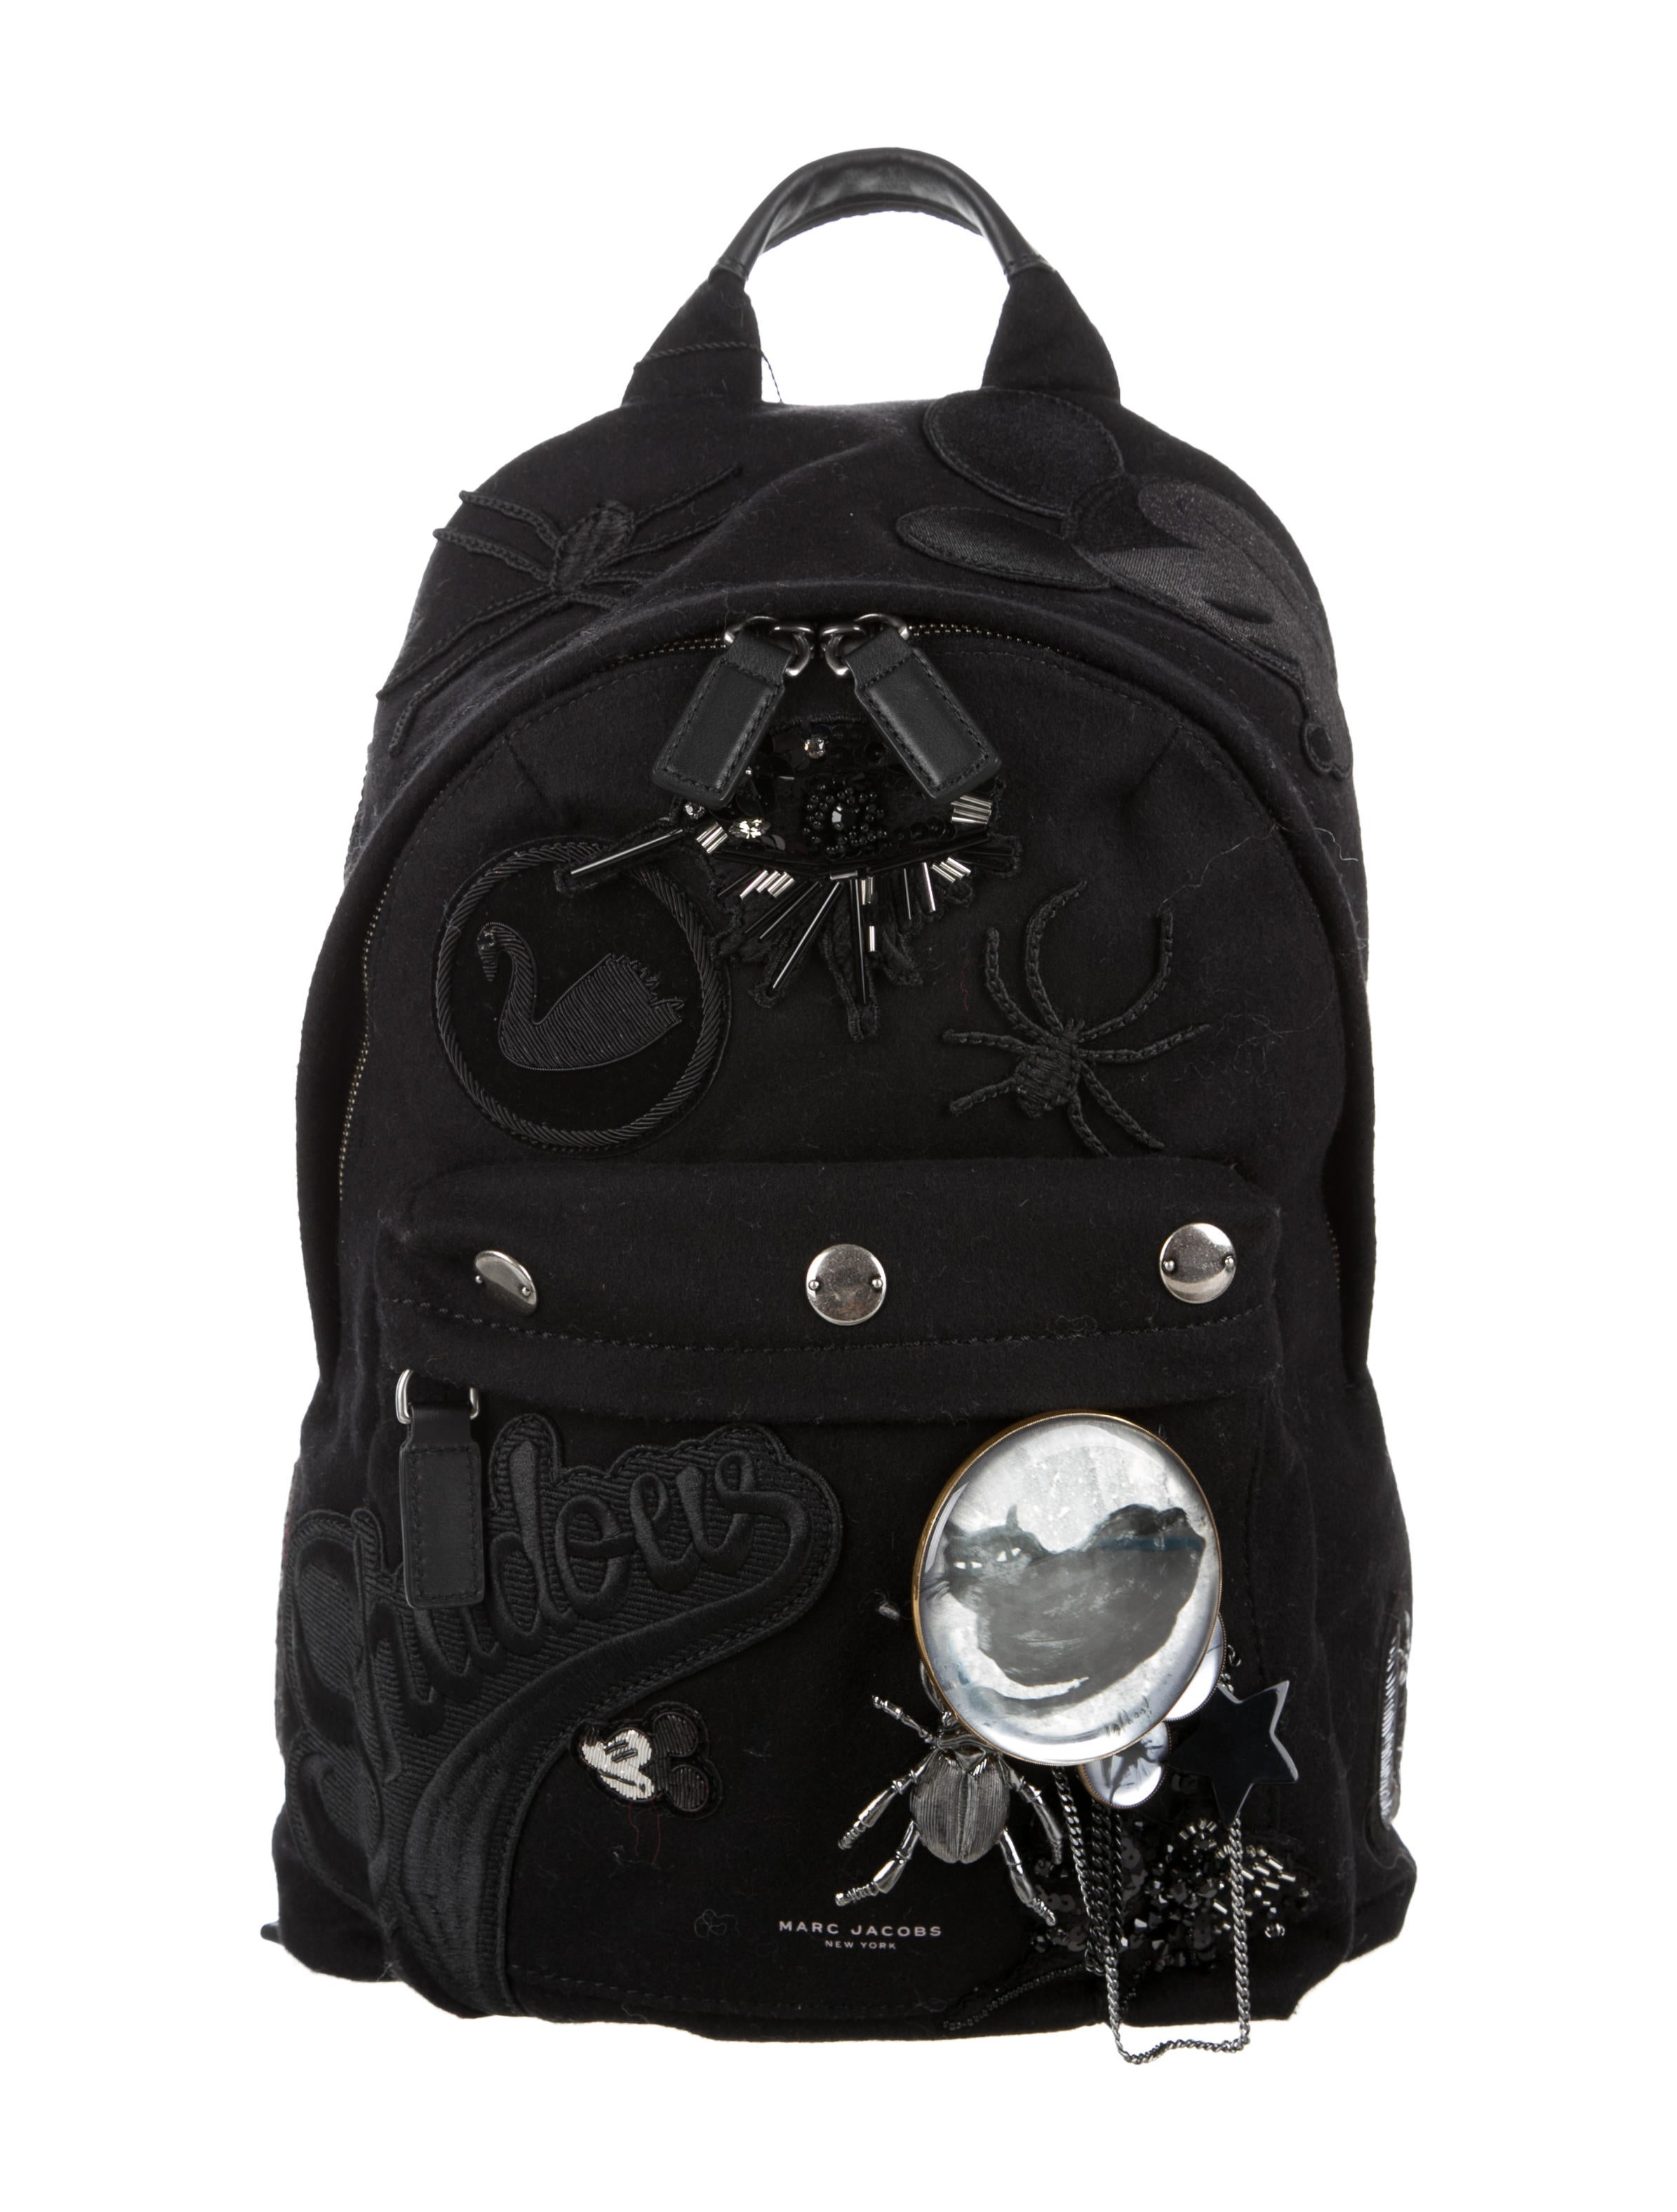 84fcc239cb Marc Jacobs Embellished Rummage Backpack - Handbags - MAR44083